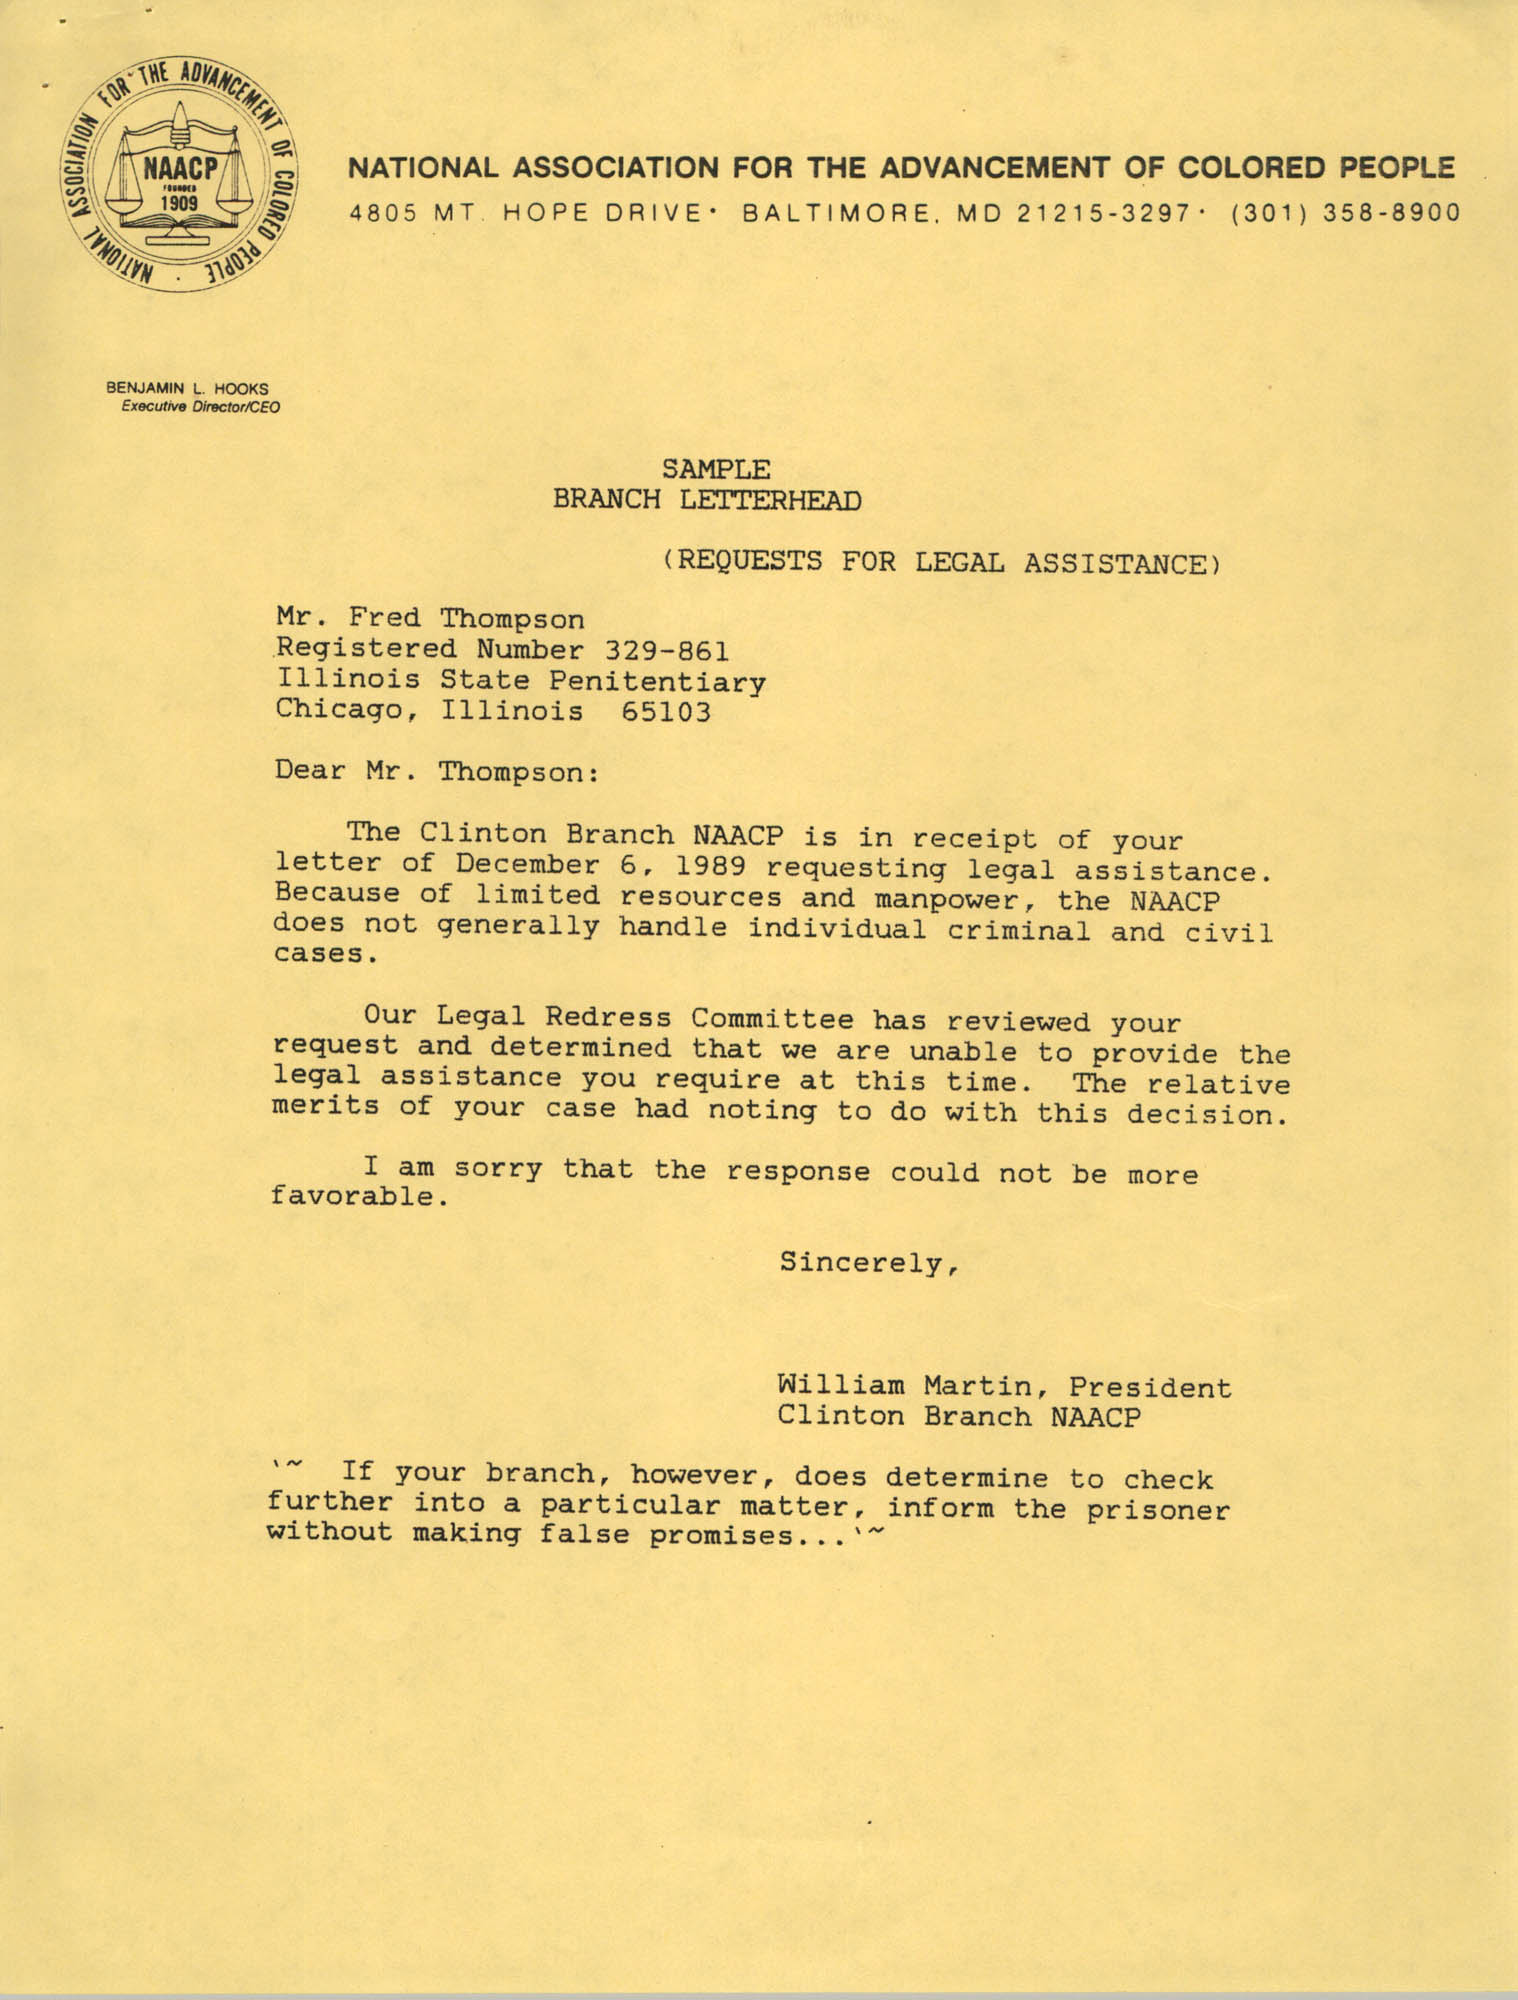 Sample, Letter from William Martin to Fred Thompson